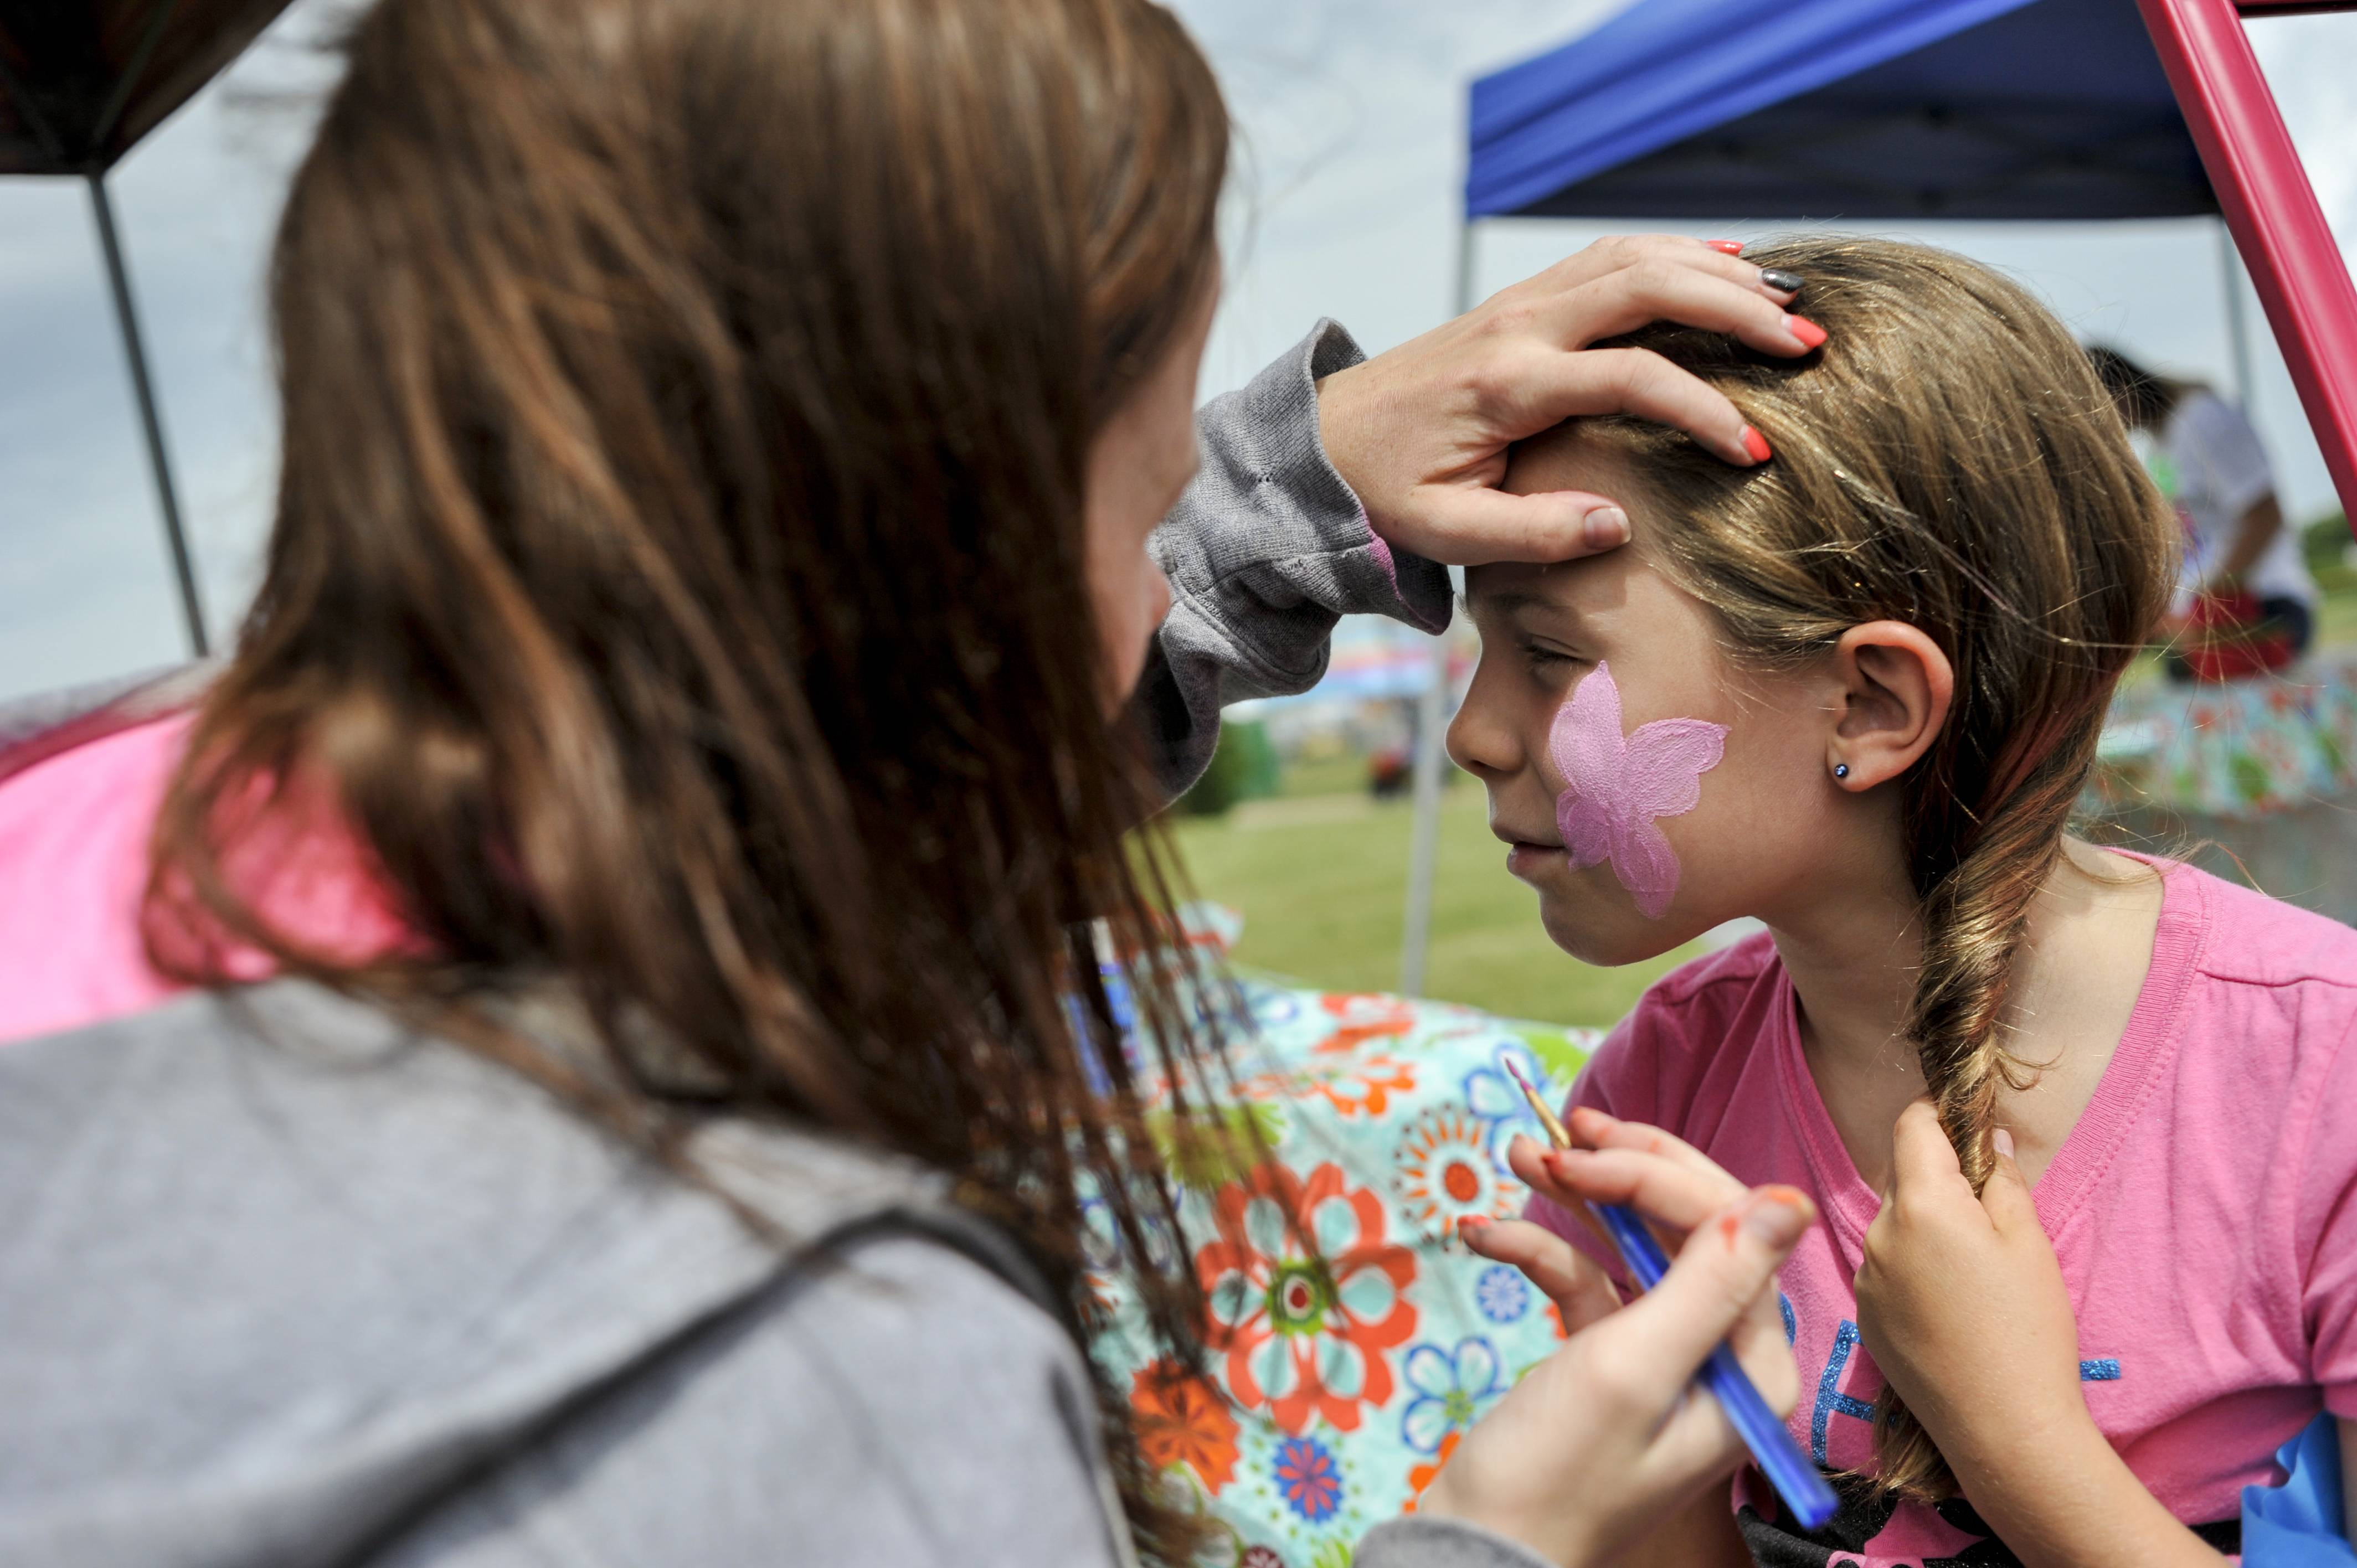 Aly Sells of Cary paints a flower on Courtney Cerniglia, 9, of Algonquin at the Founders' Days festival in Algonquin Lakes Park.